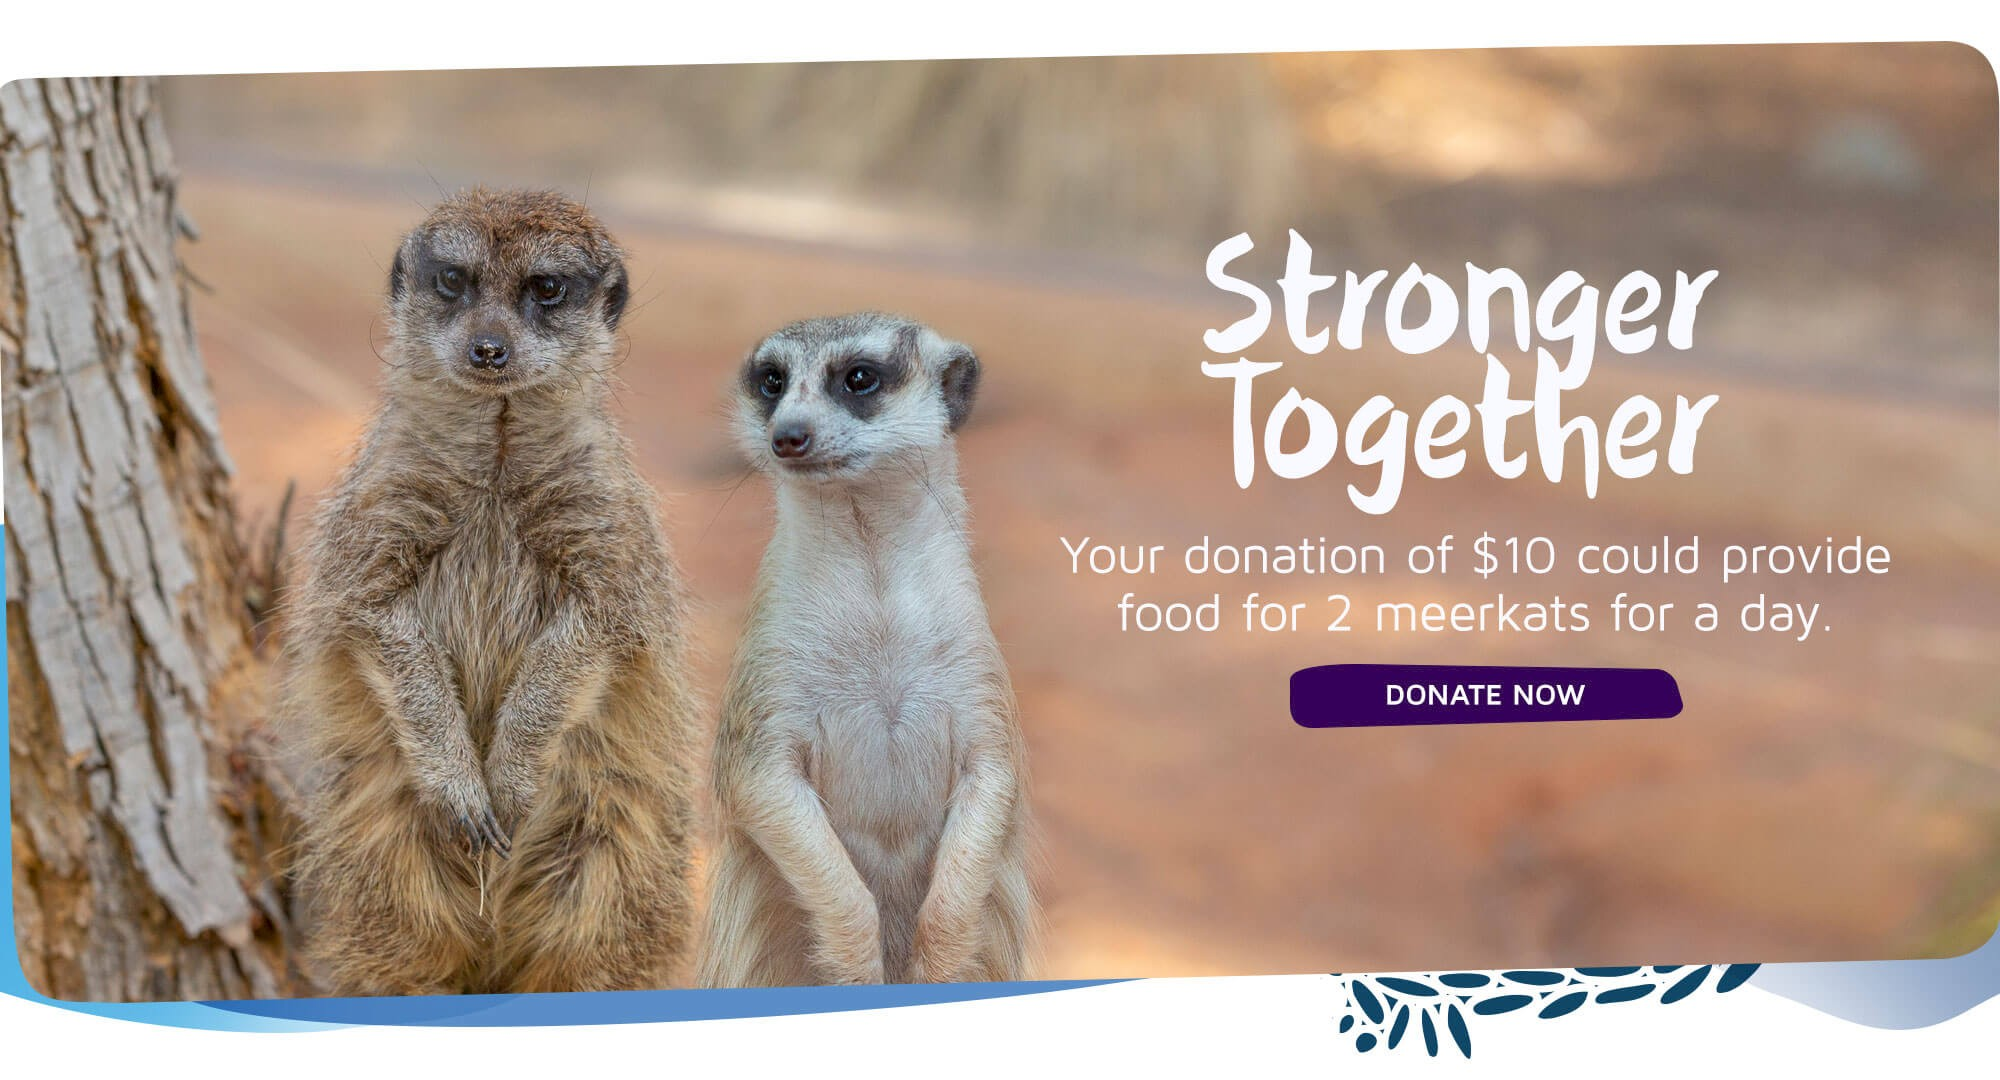 Your gift of $10 could provide food for 2 meerkats for a day. click to donate.